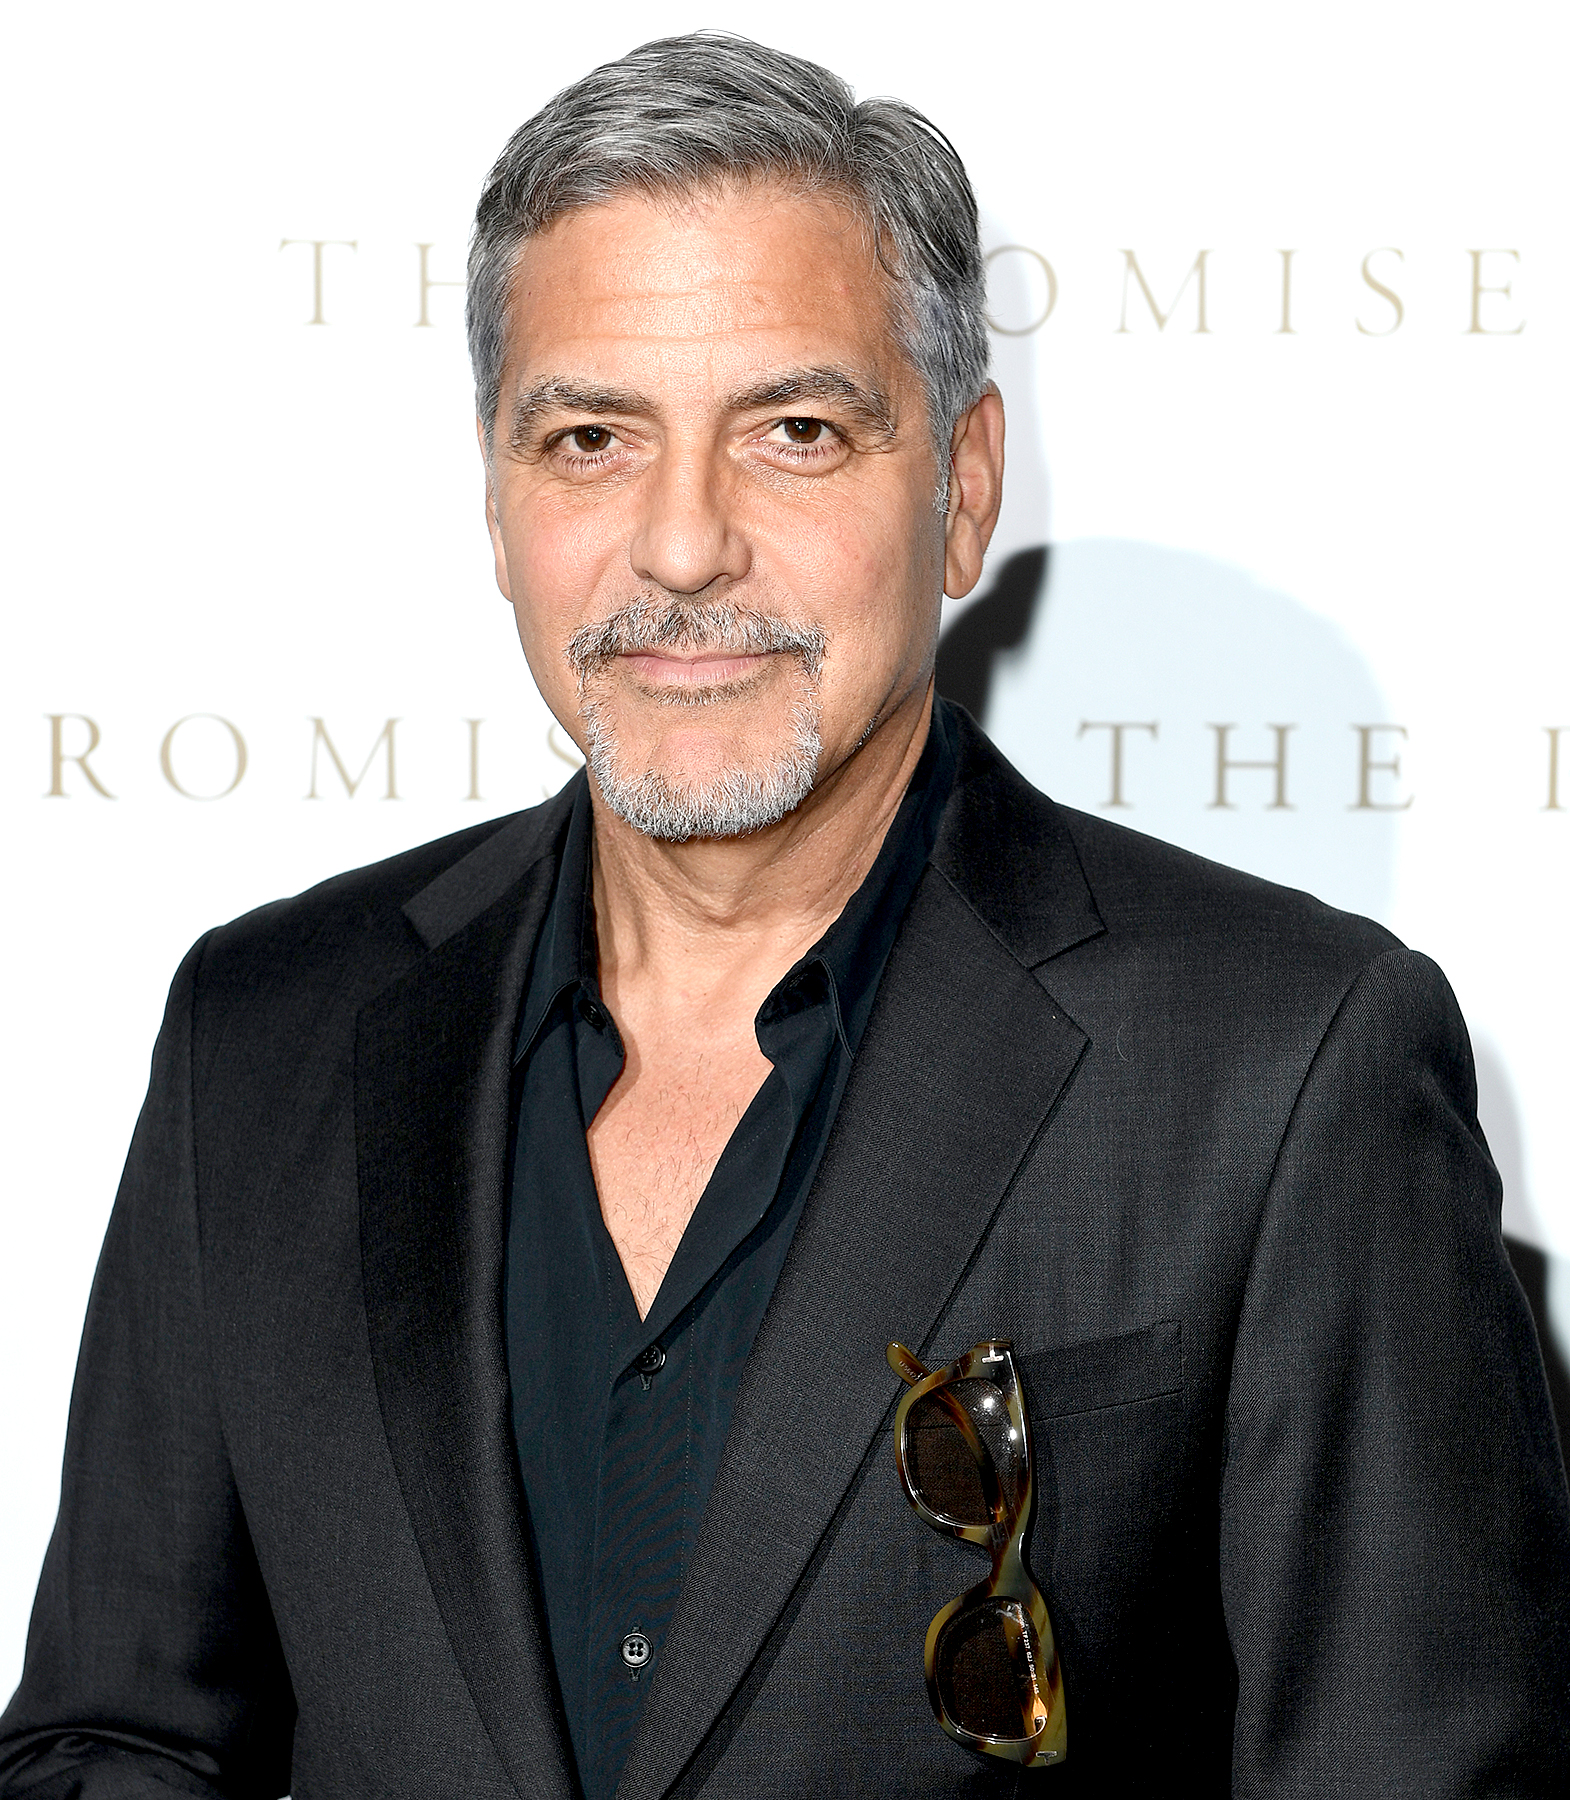 George Clooney Released From Hospital After Scooter Accident in Italy